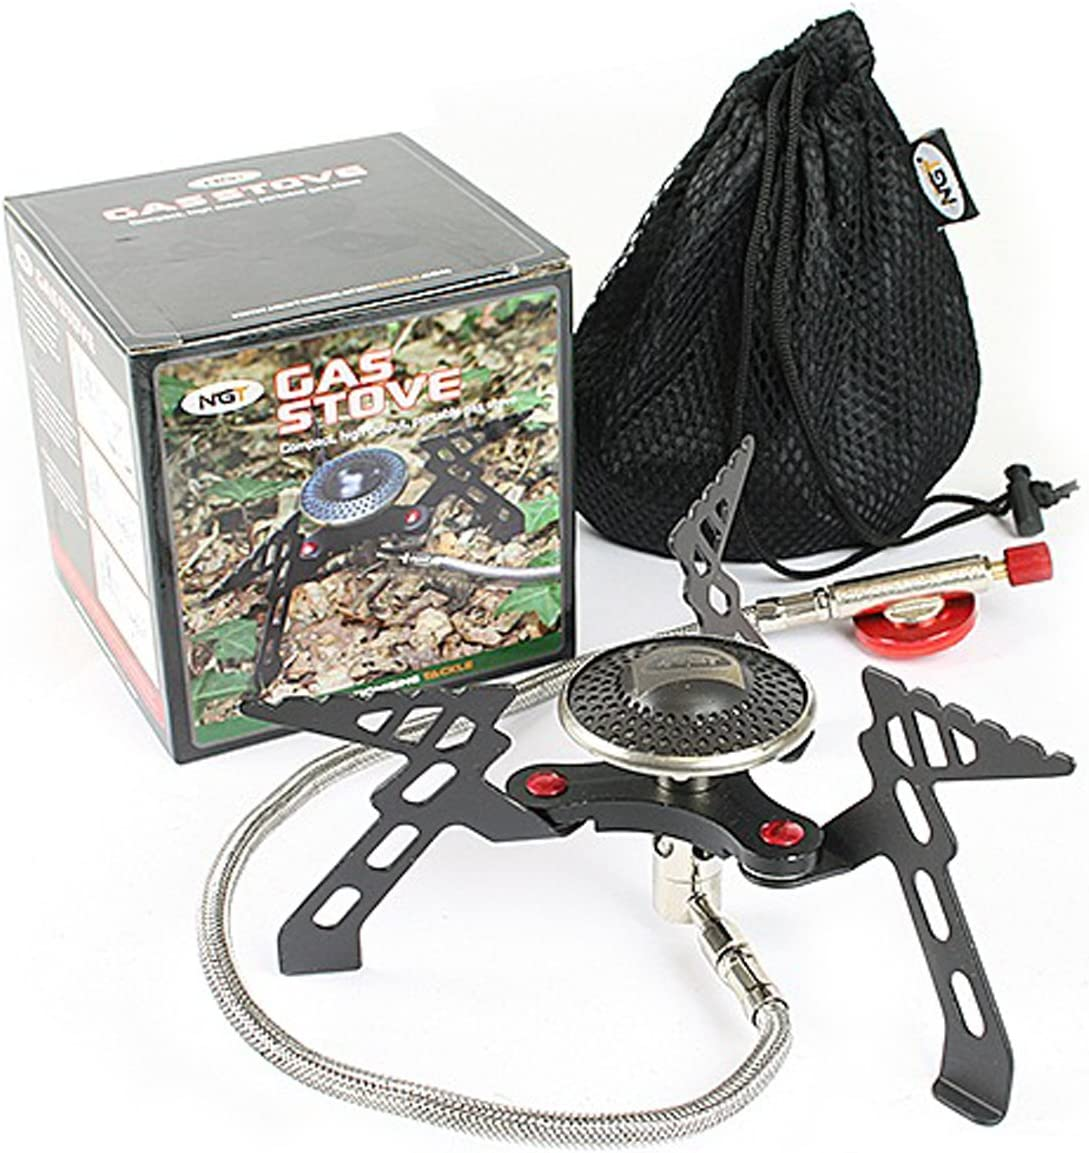 NGT Portable Foldable Camping Gas Stove Outdoor Cooking Hiking Boat Picnic 3000W by NGT